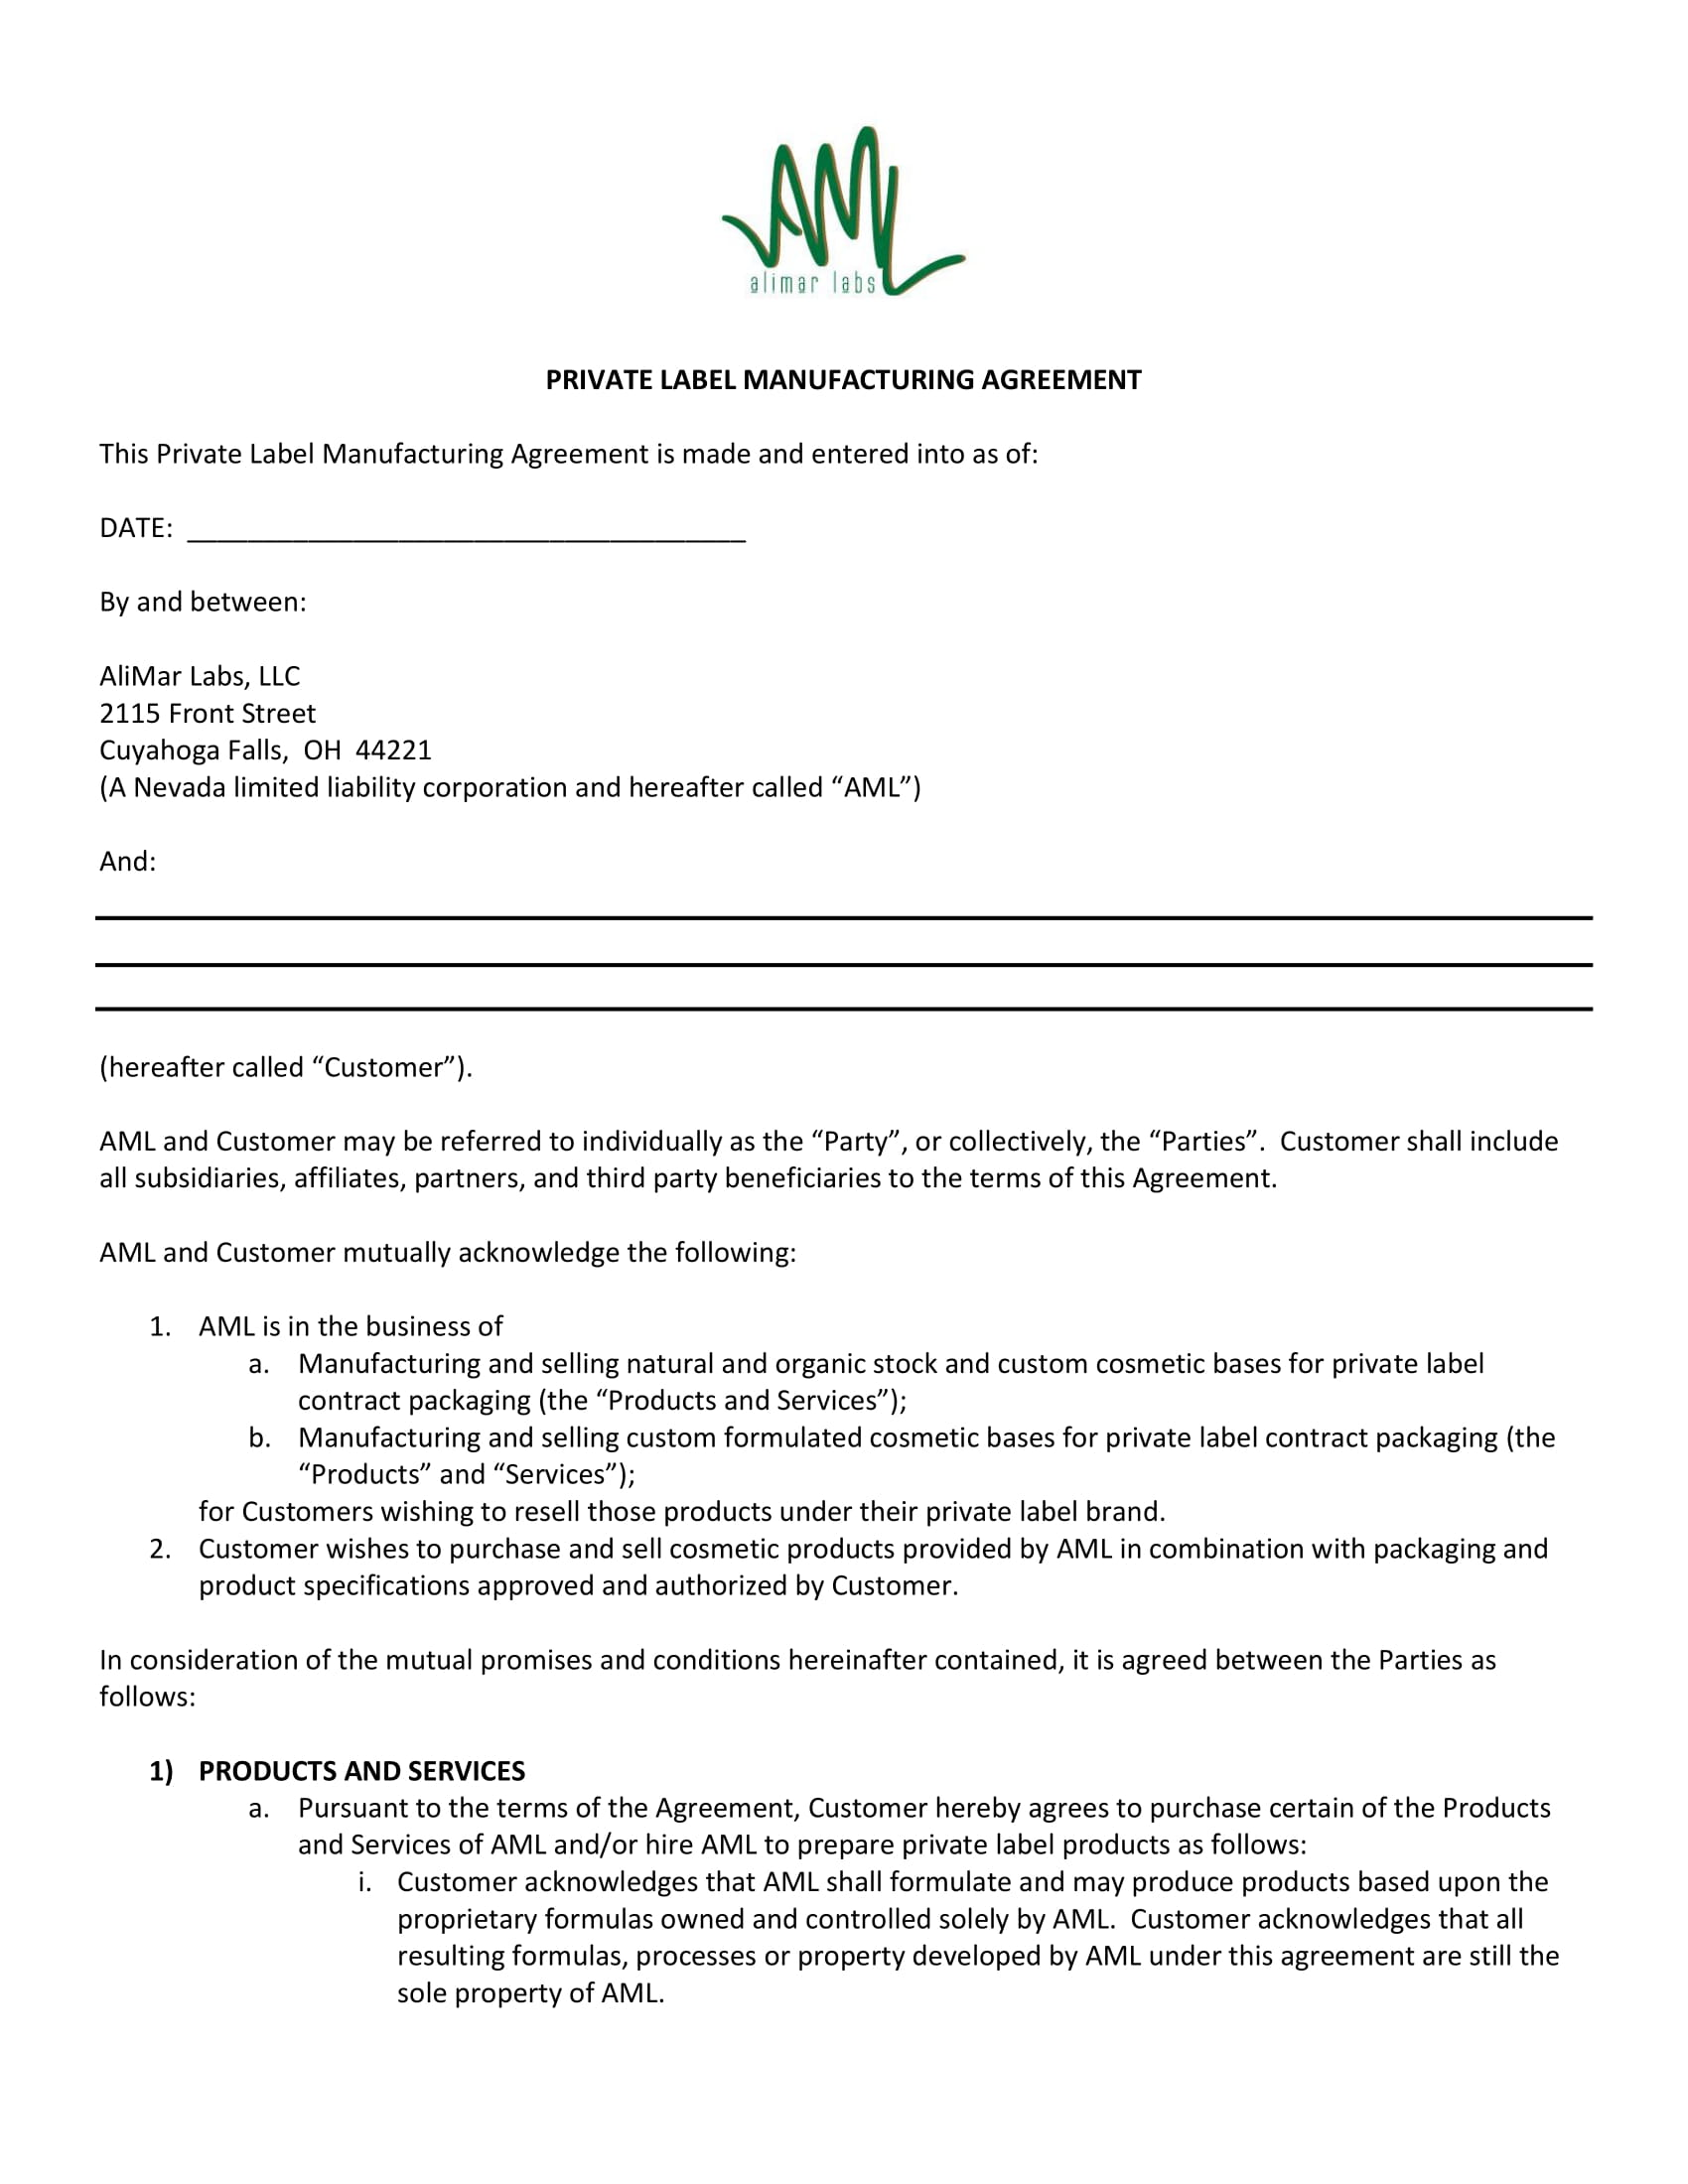 8 Contract Manufacturing Quality Agreement Printable